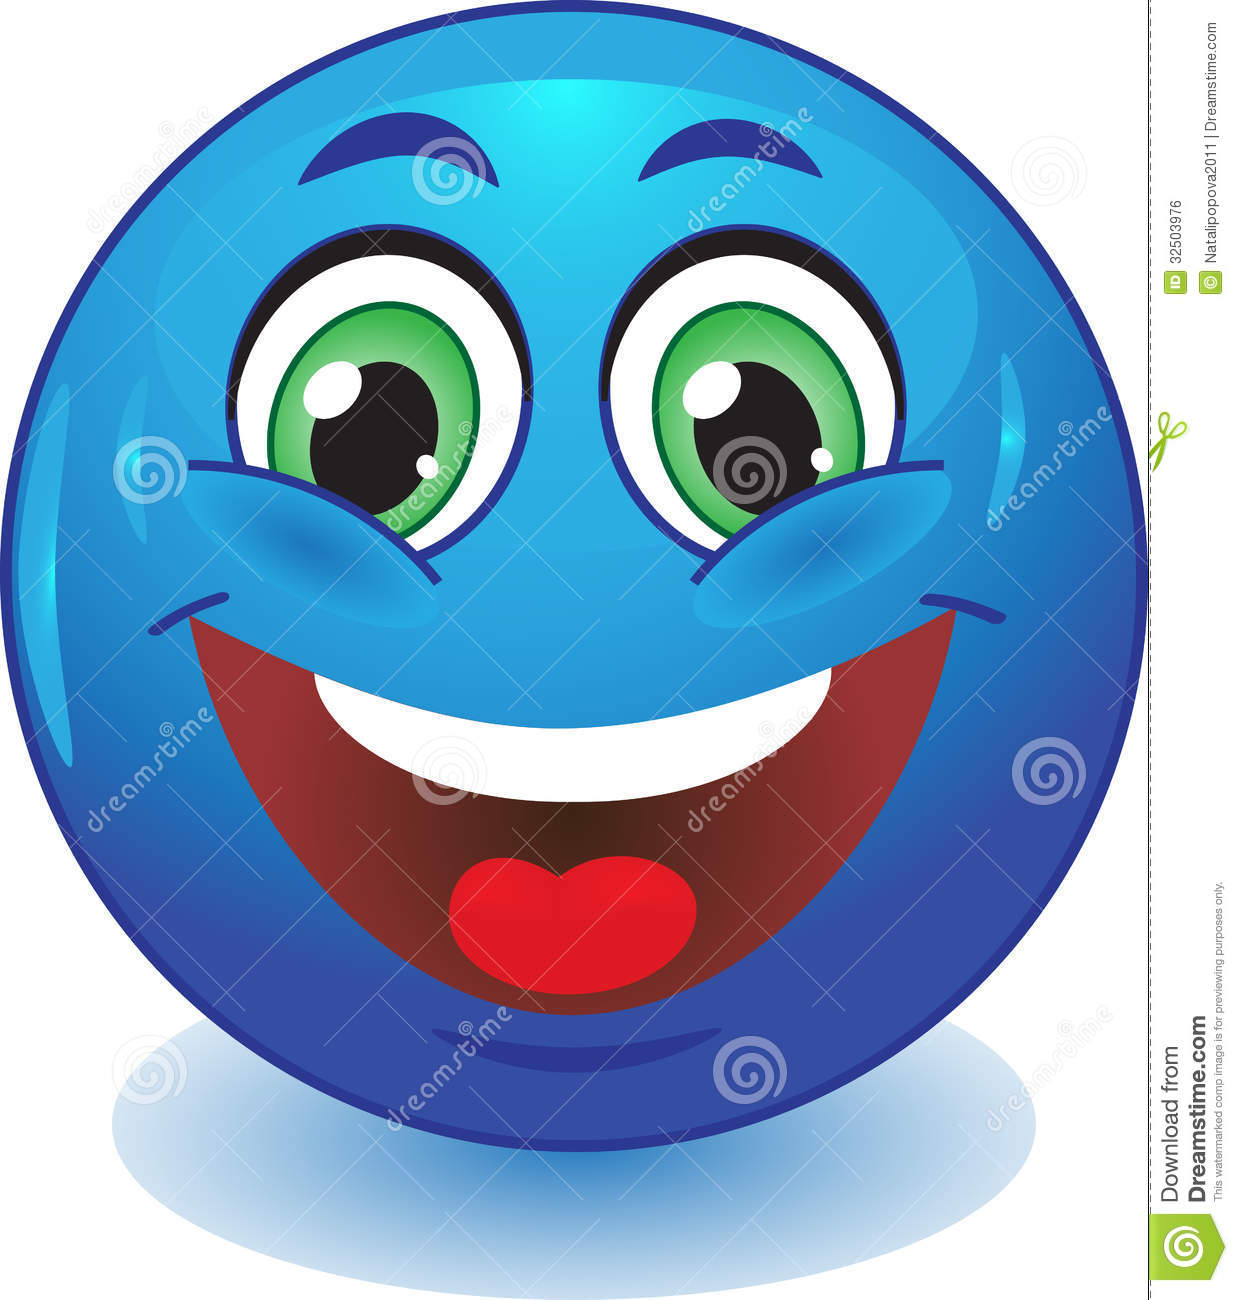 Royalty Free Stock Image Blue Smiley Smiles Stock Image Human Emotion Smile Image32503976 on happy cartoon mouth